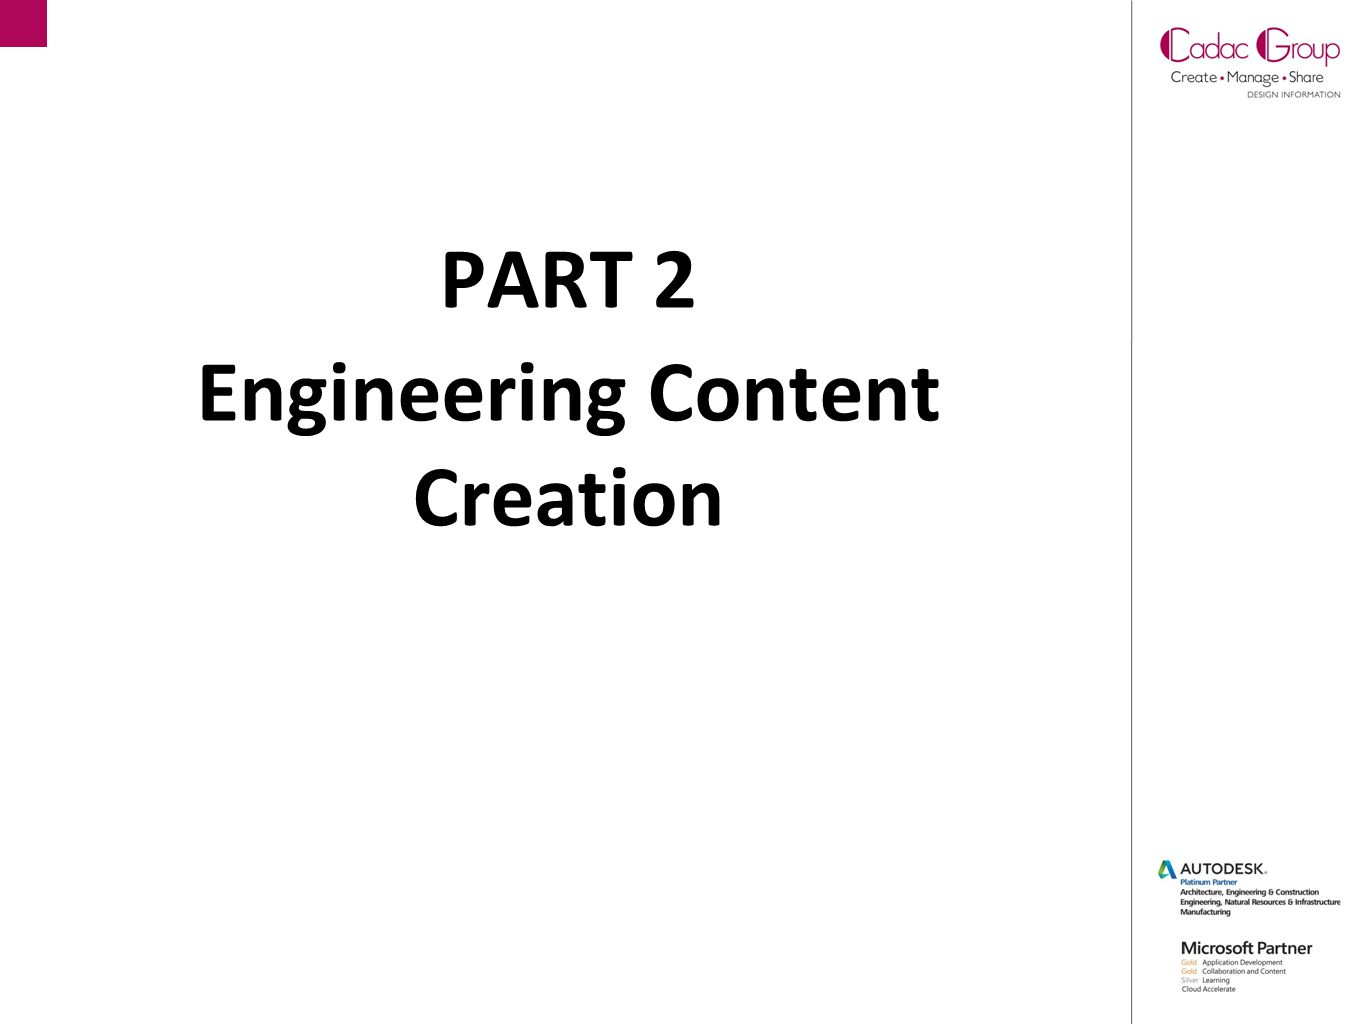 PART 2 Engineering Content Creation